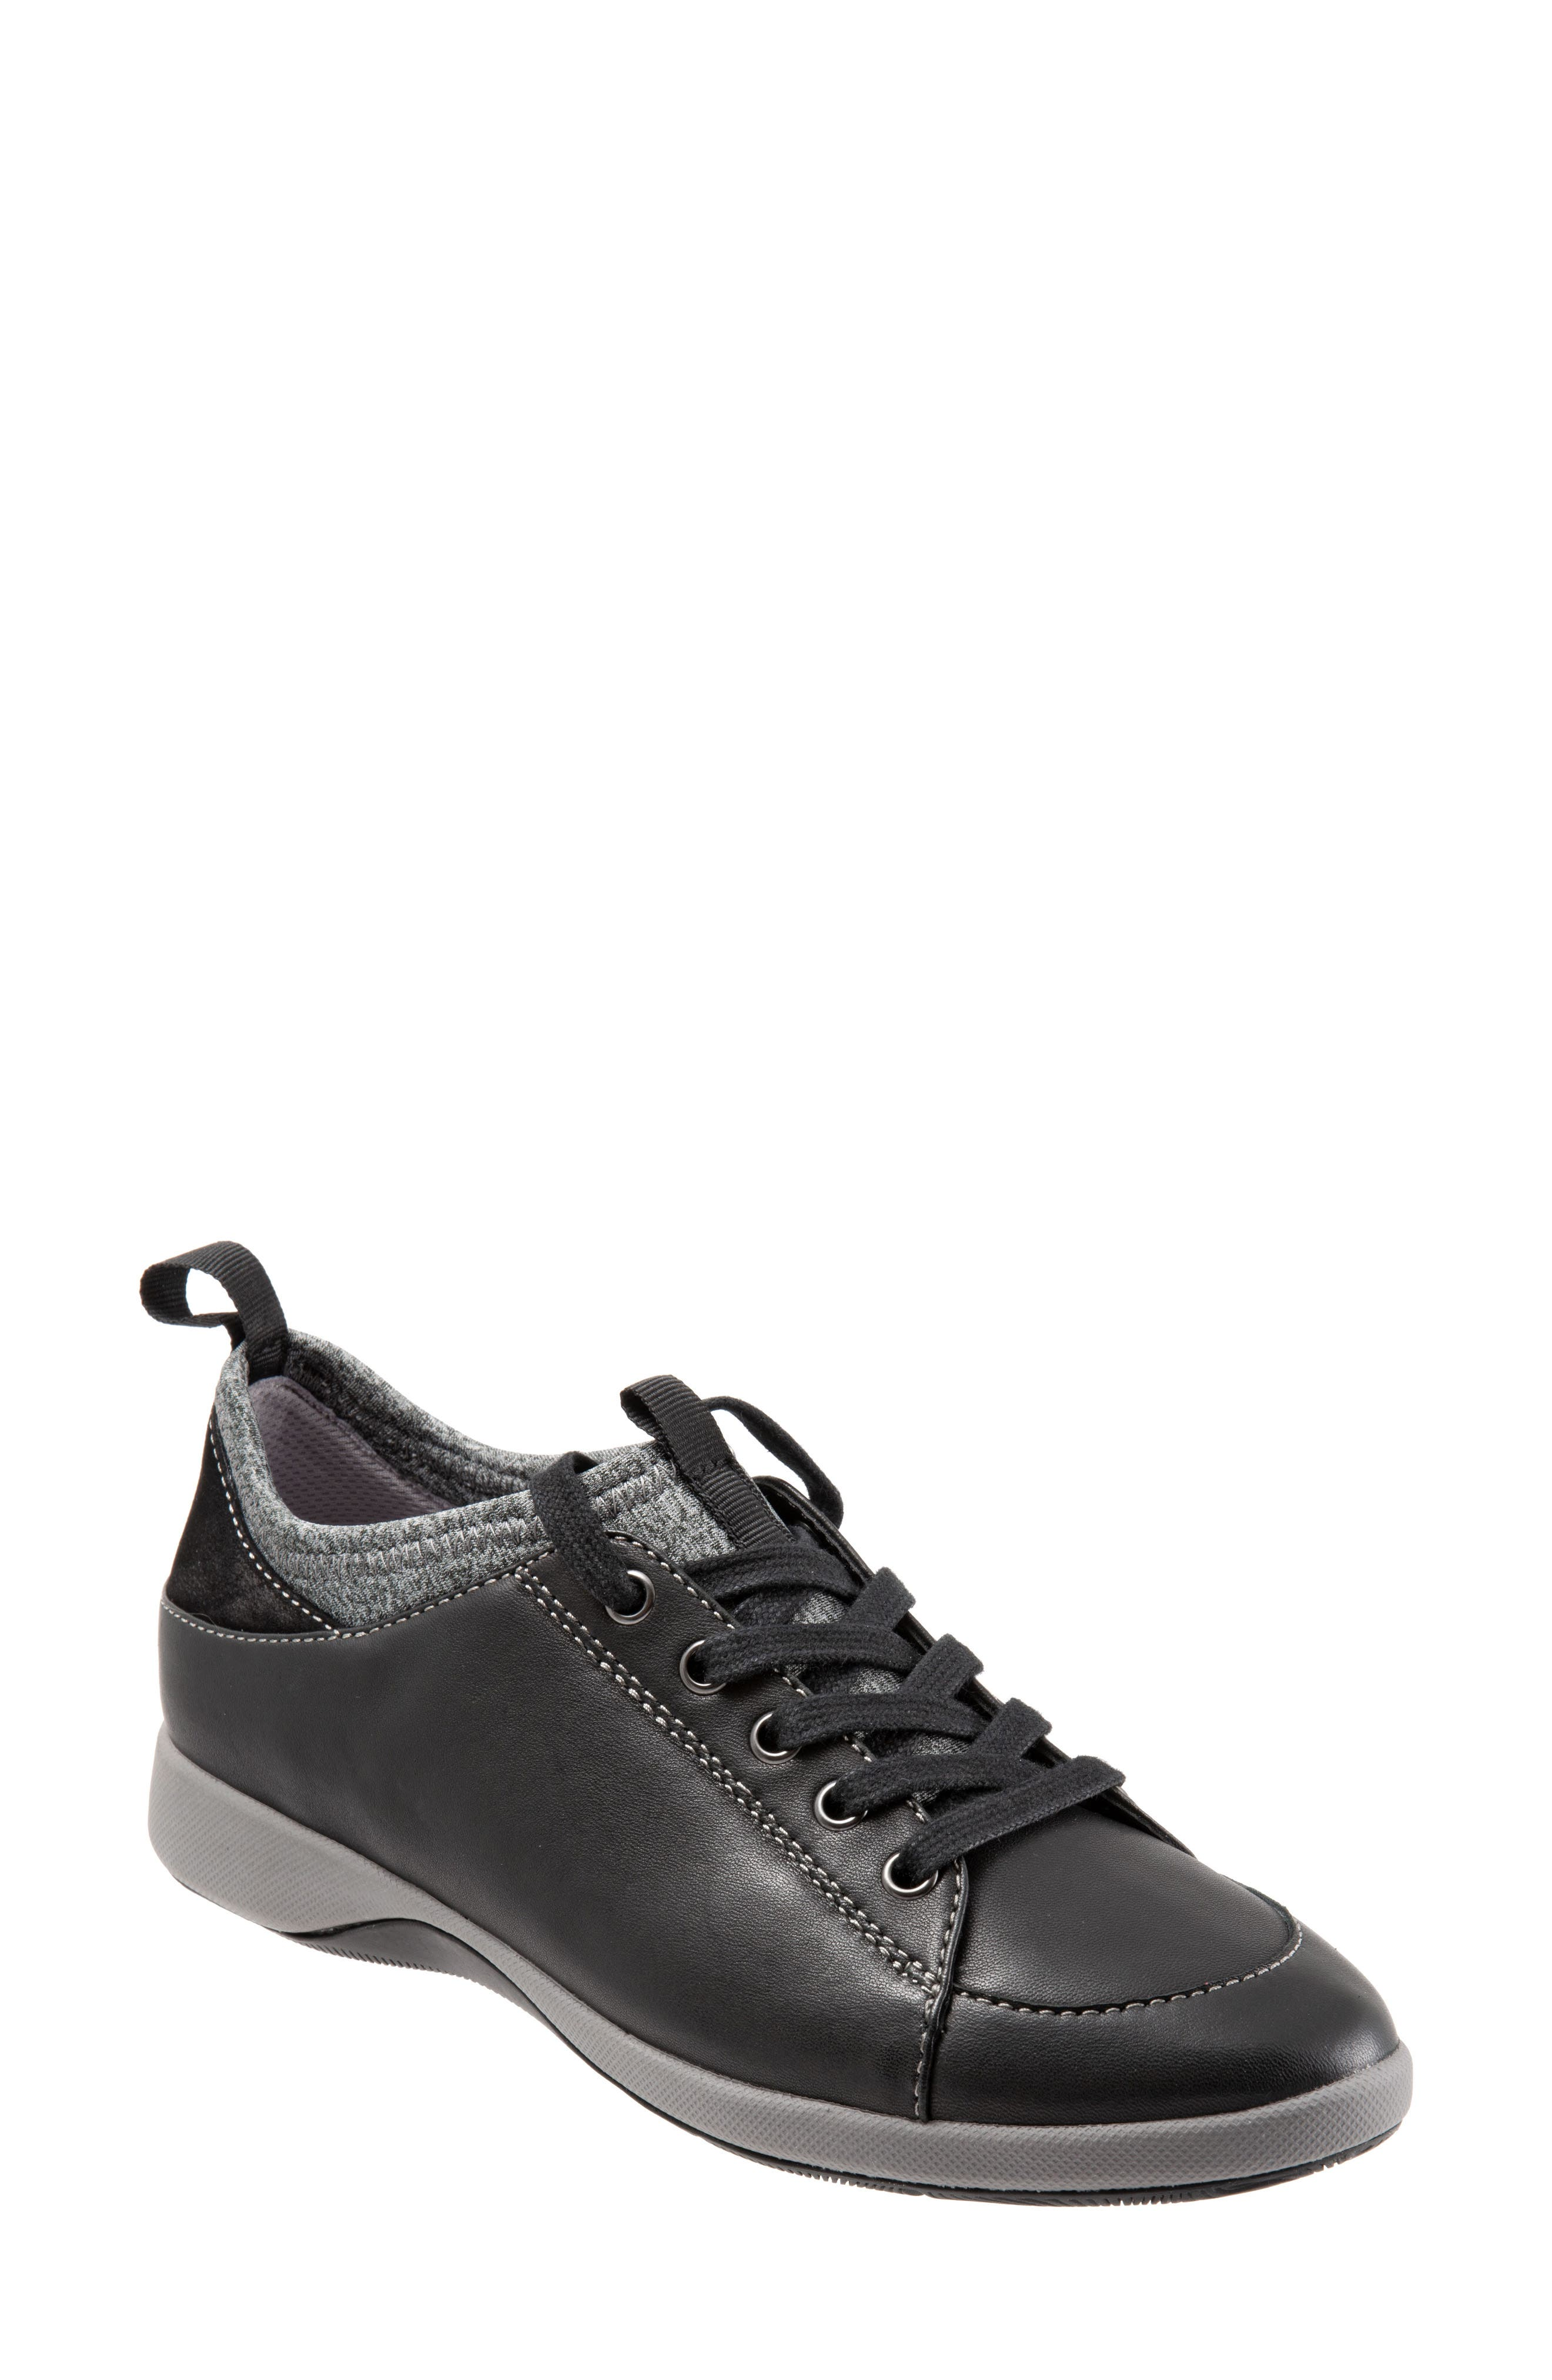 SAVA Haven Sneaker,                             Main thumbnail 1, color,                             BLACK/ GREY LEATHER